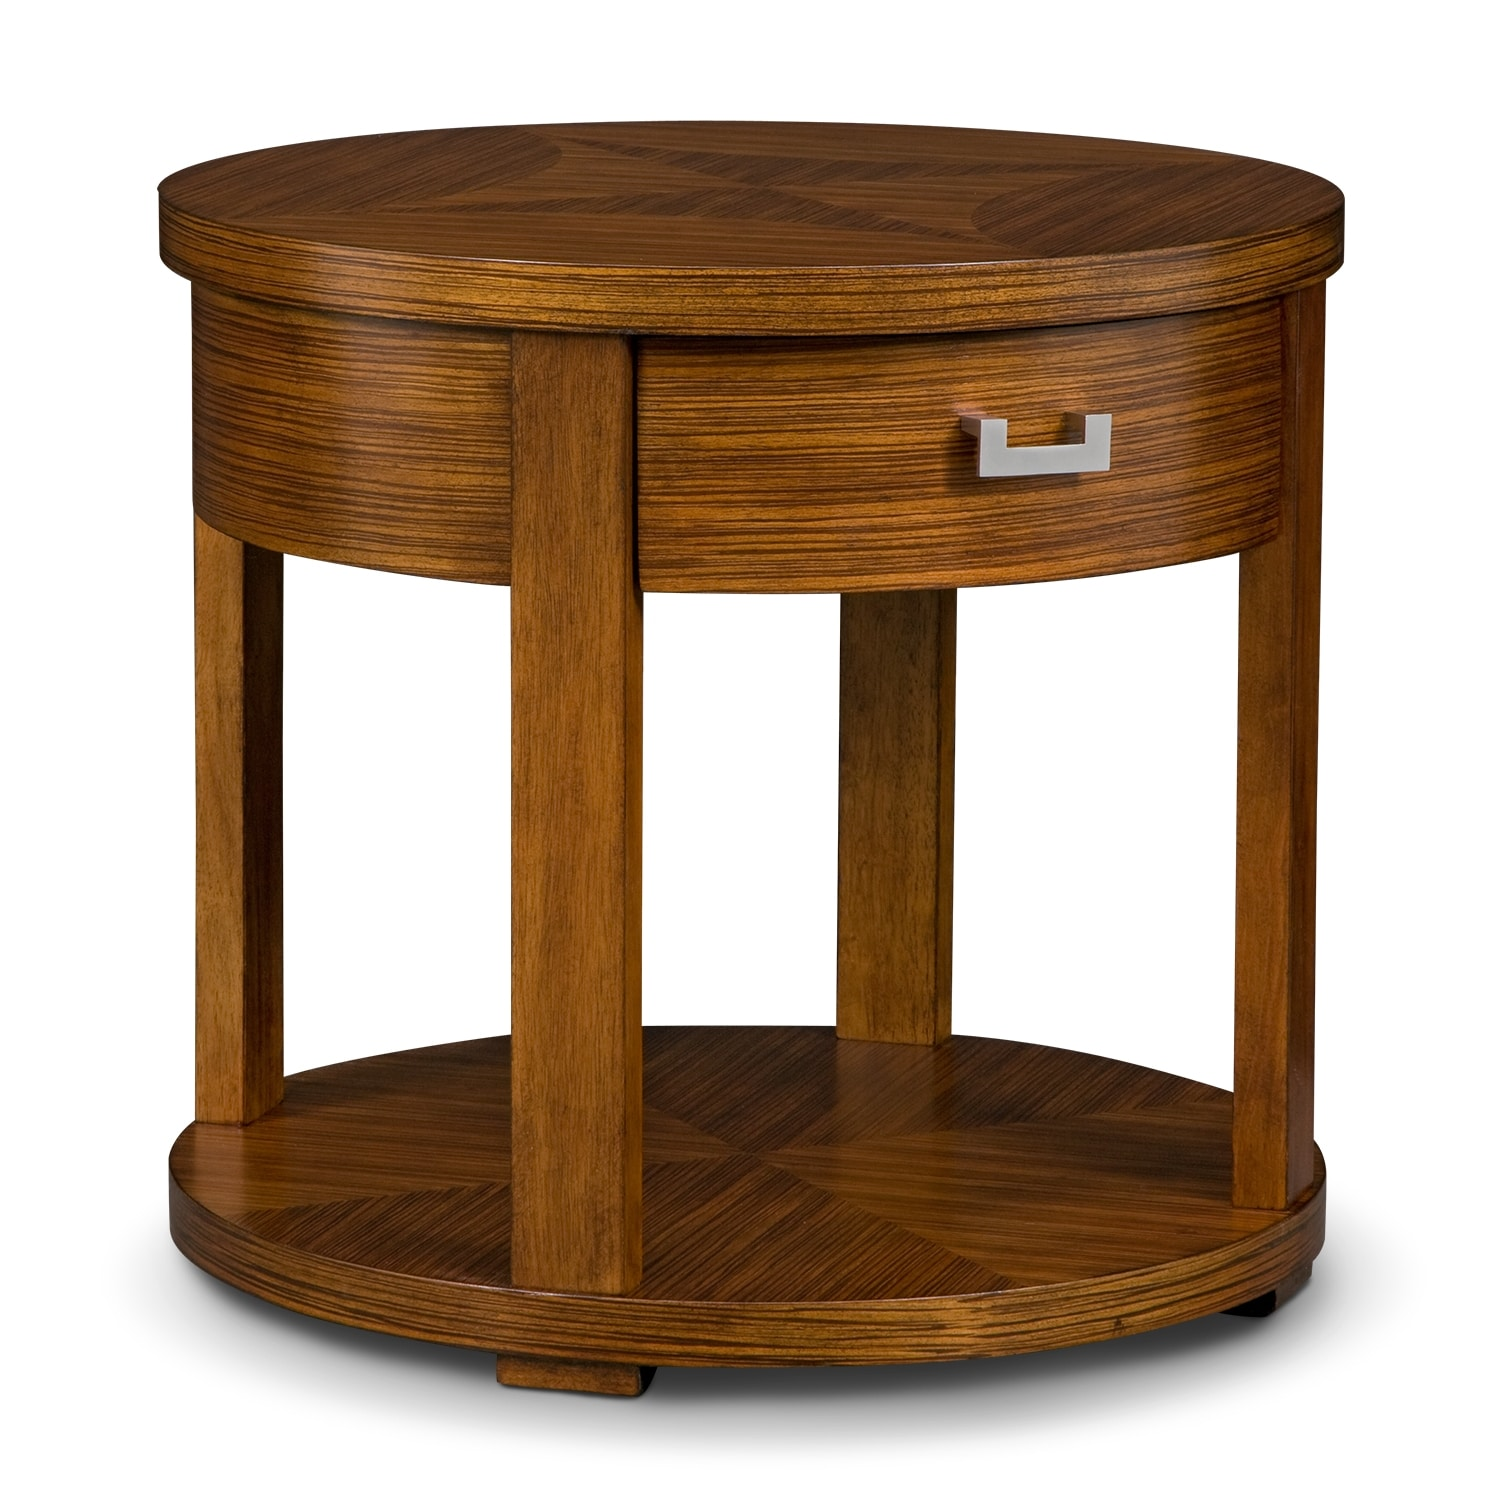 Compass occasional tables round end table value city furniture